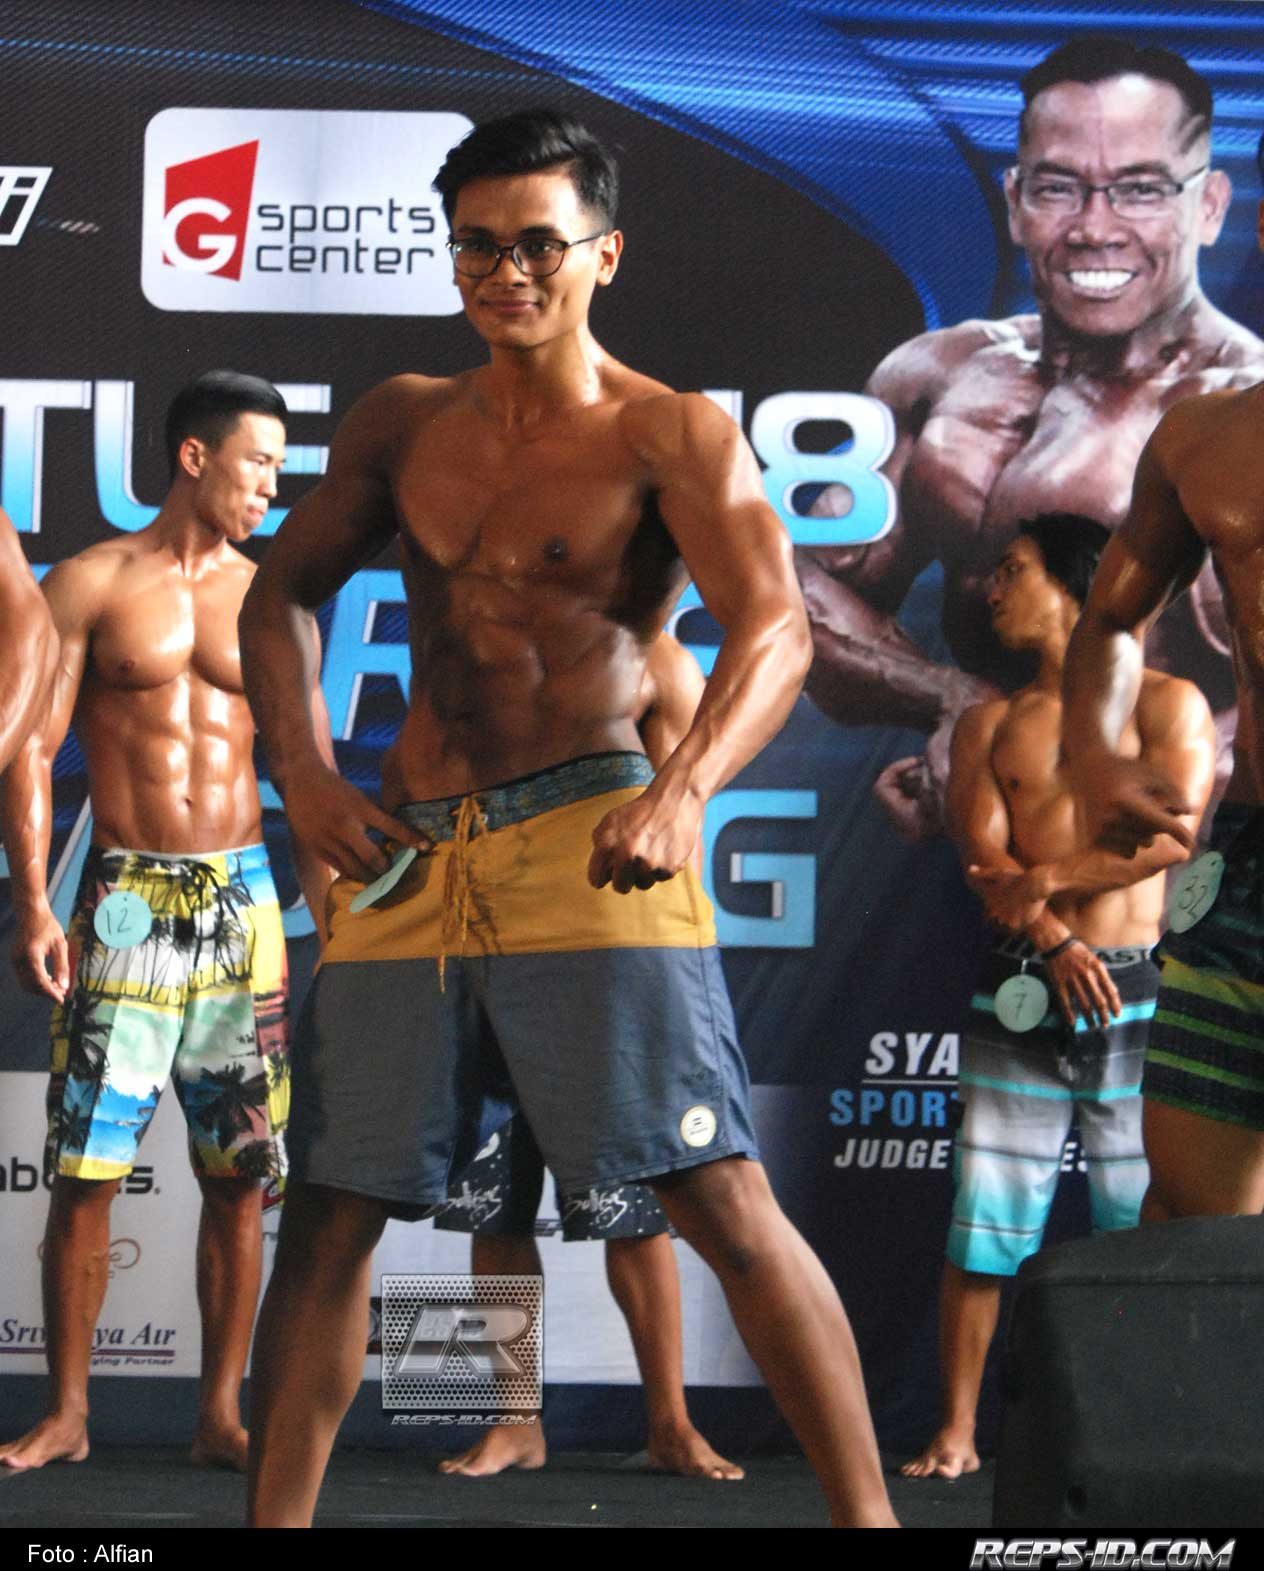 Sportisi Body Battle With Gsports Center Padang 2018